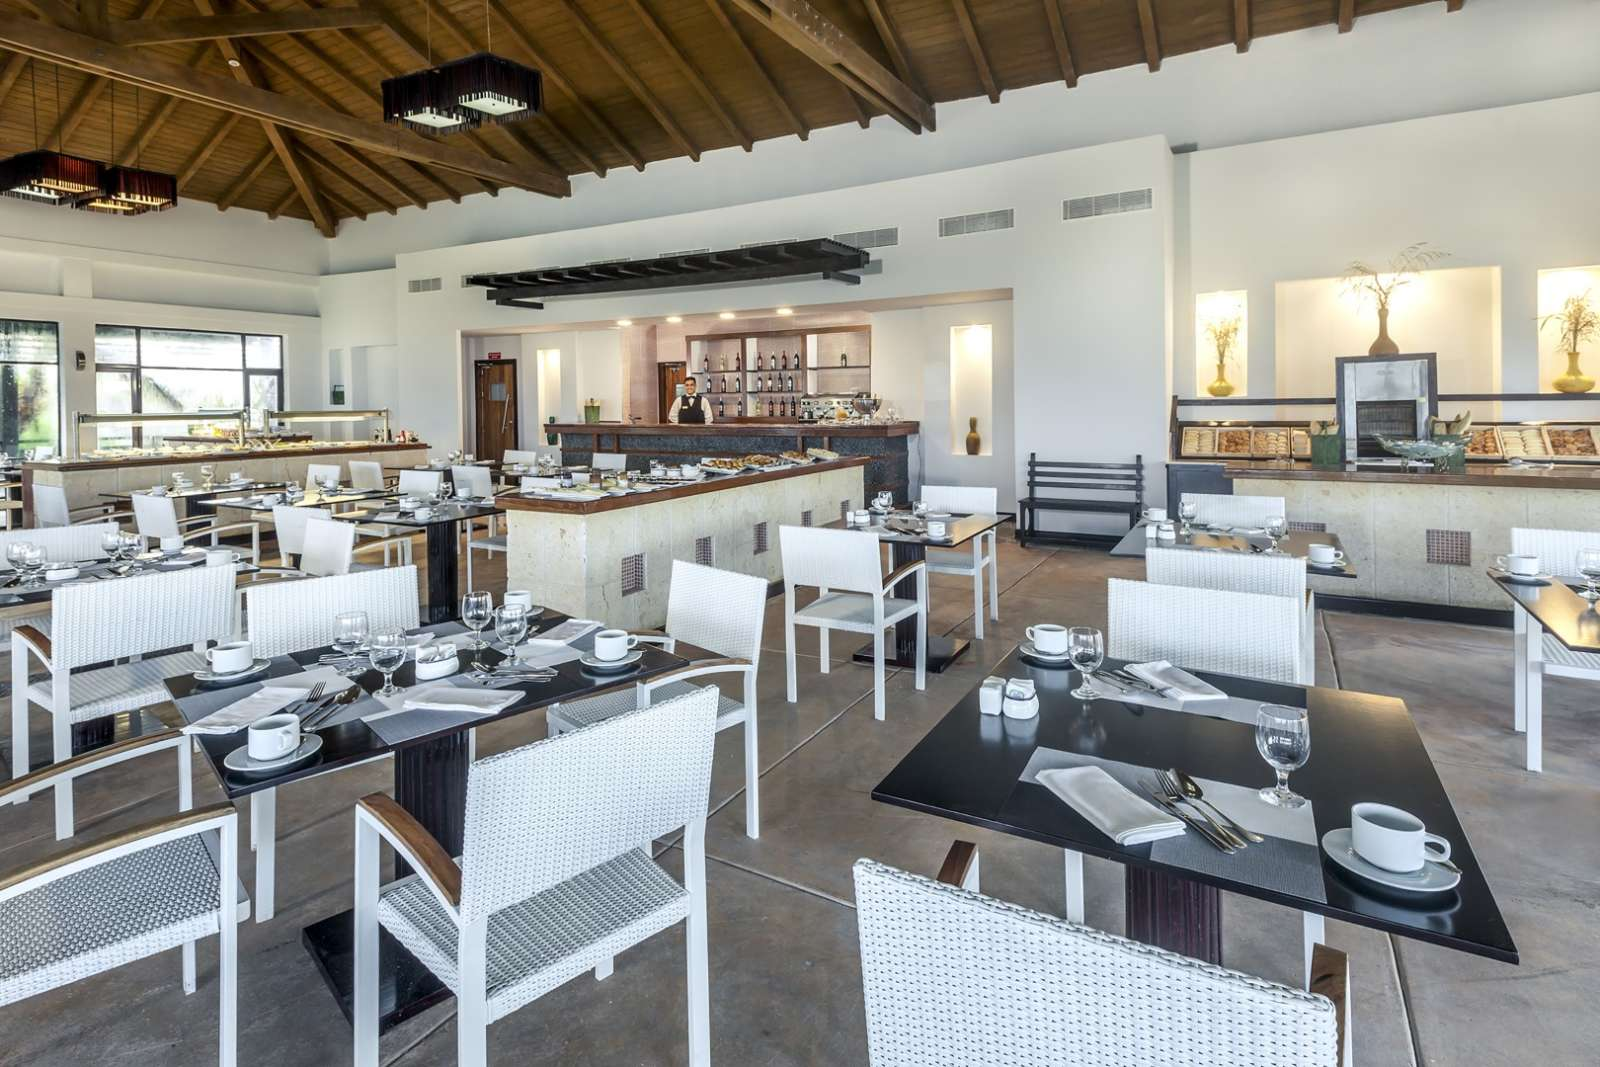 Casual dining at Melia Buenavista